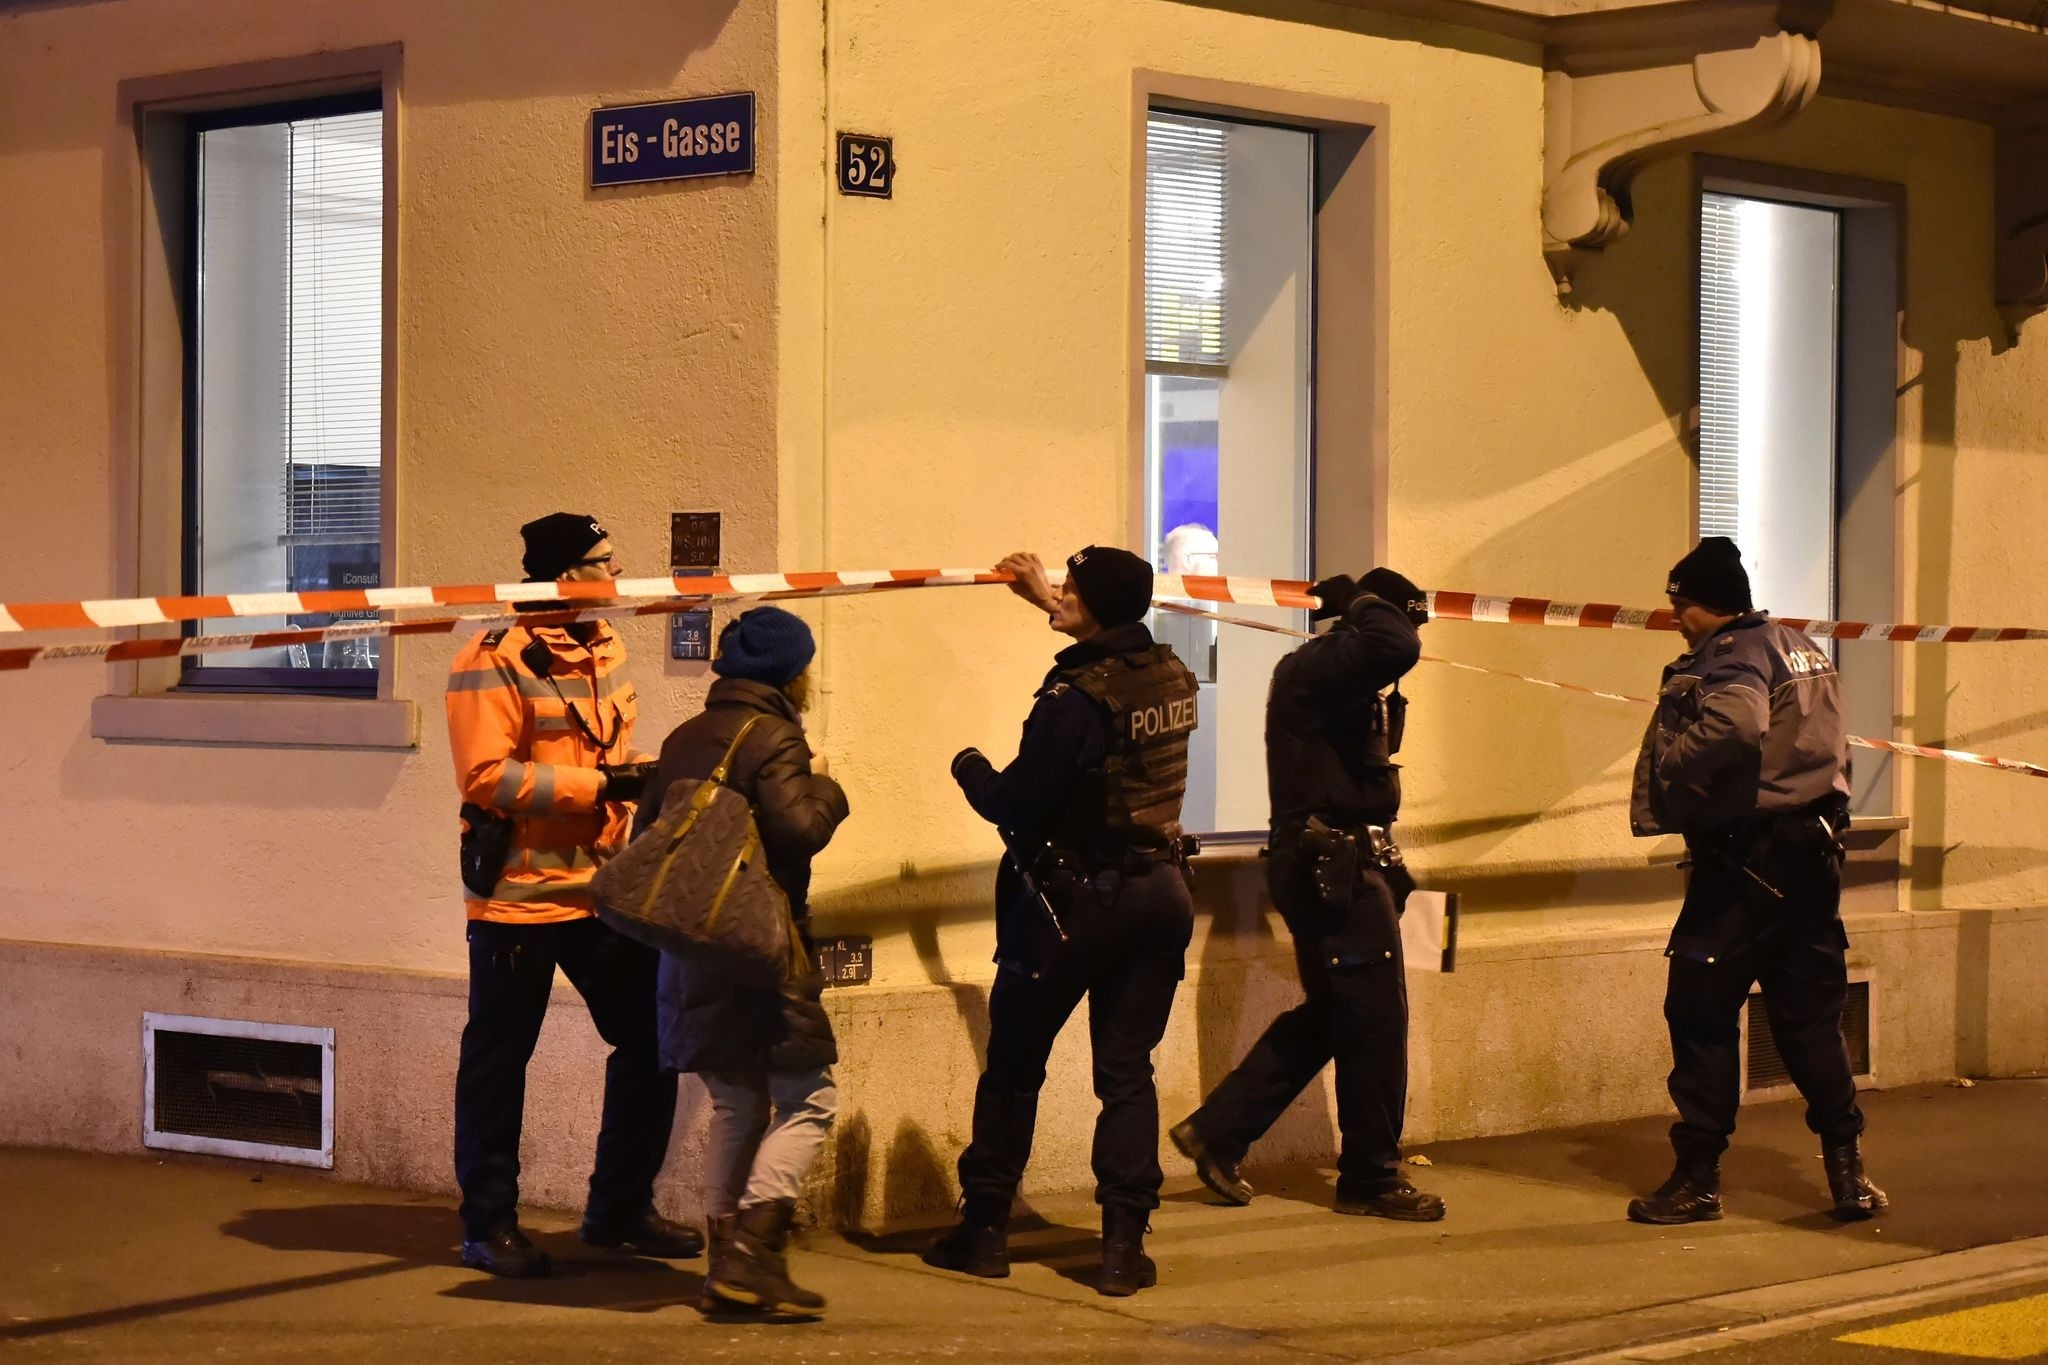 Swiss police walk behind a police cordon outside a Muslim prayer hall at the Eis-Gasse street, central Zurich, on December 19, 2016, after three people were injured by gunfire. (AFP Photo)